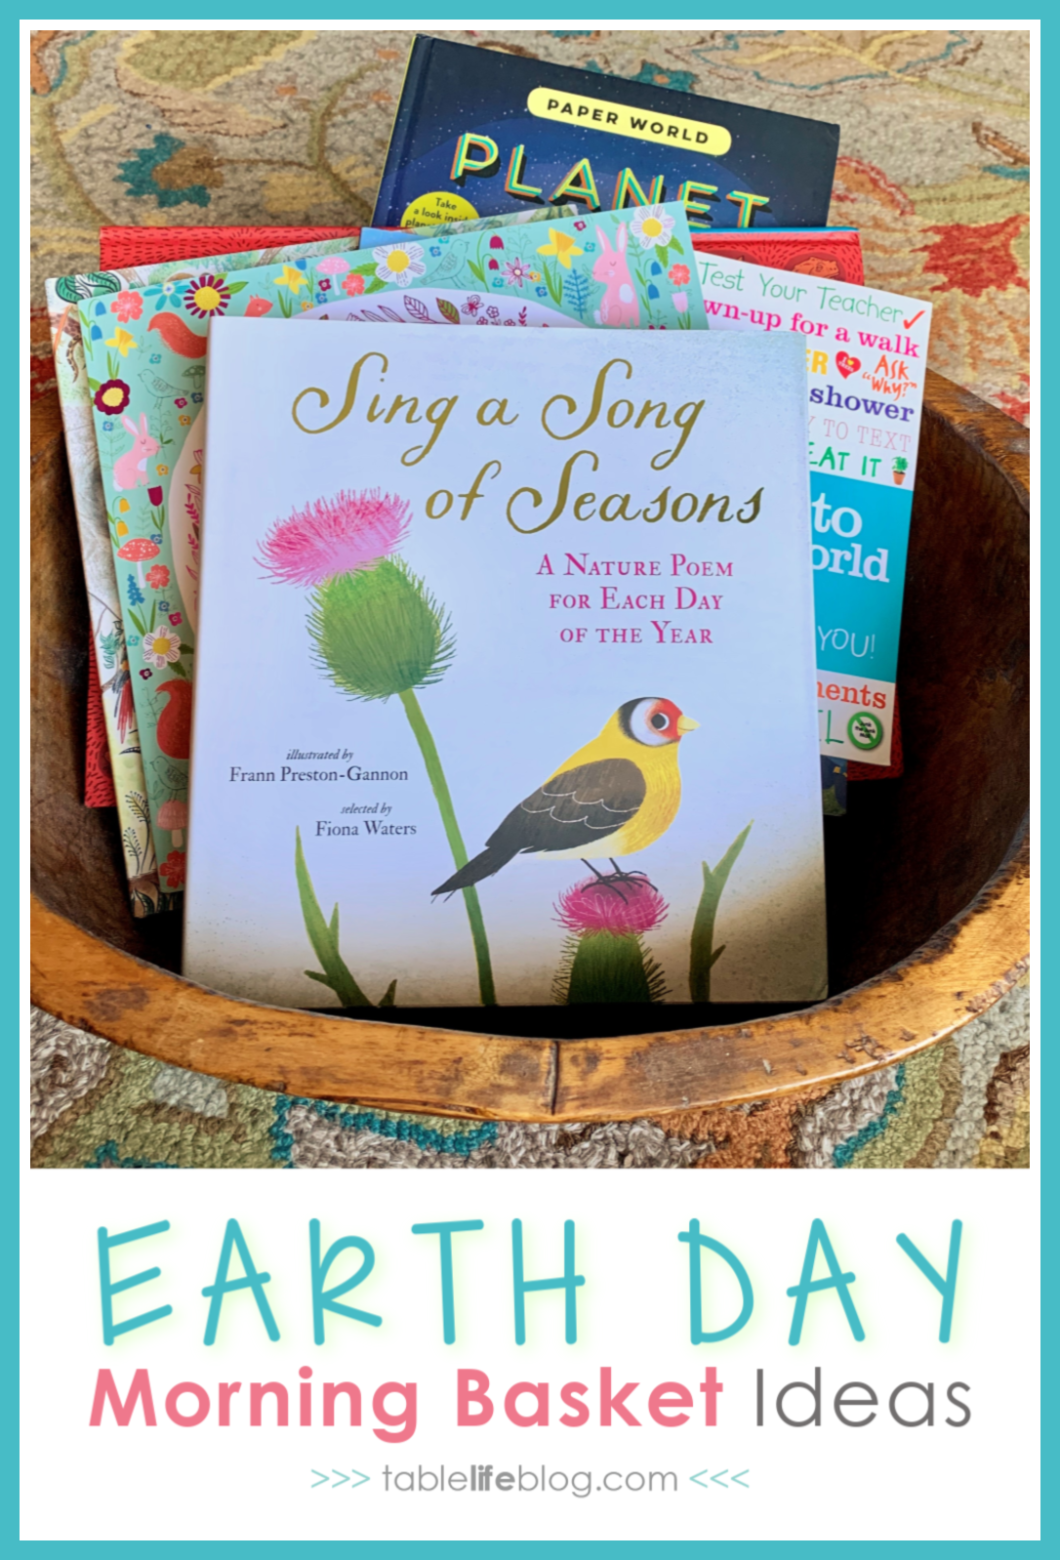 Looking for Earth Day Morning Basket ideas? We've got you covered with reading suggestions and hands-on nature-inspired fun.